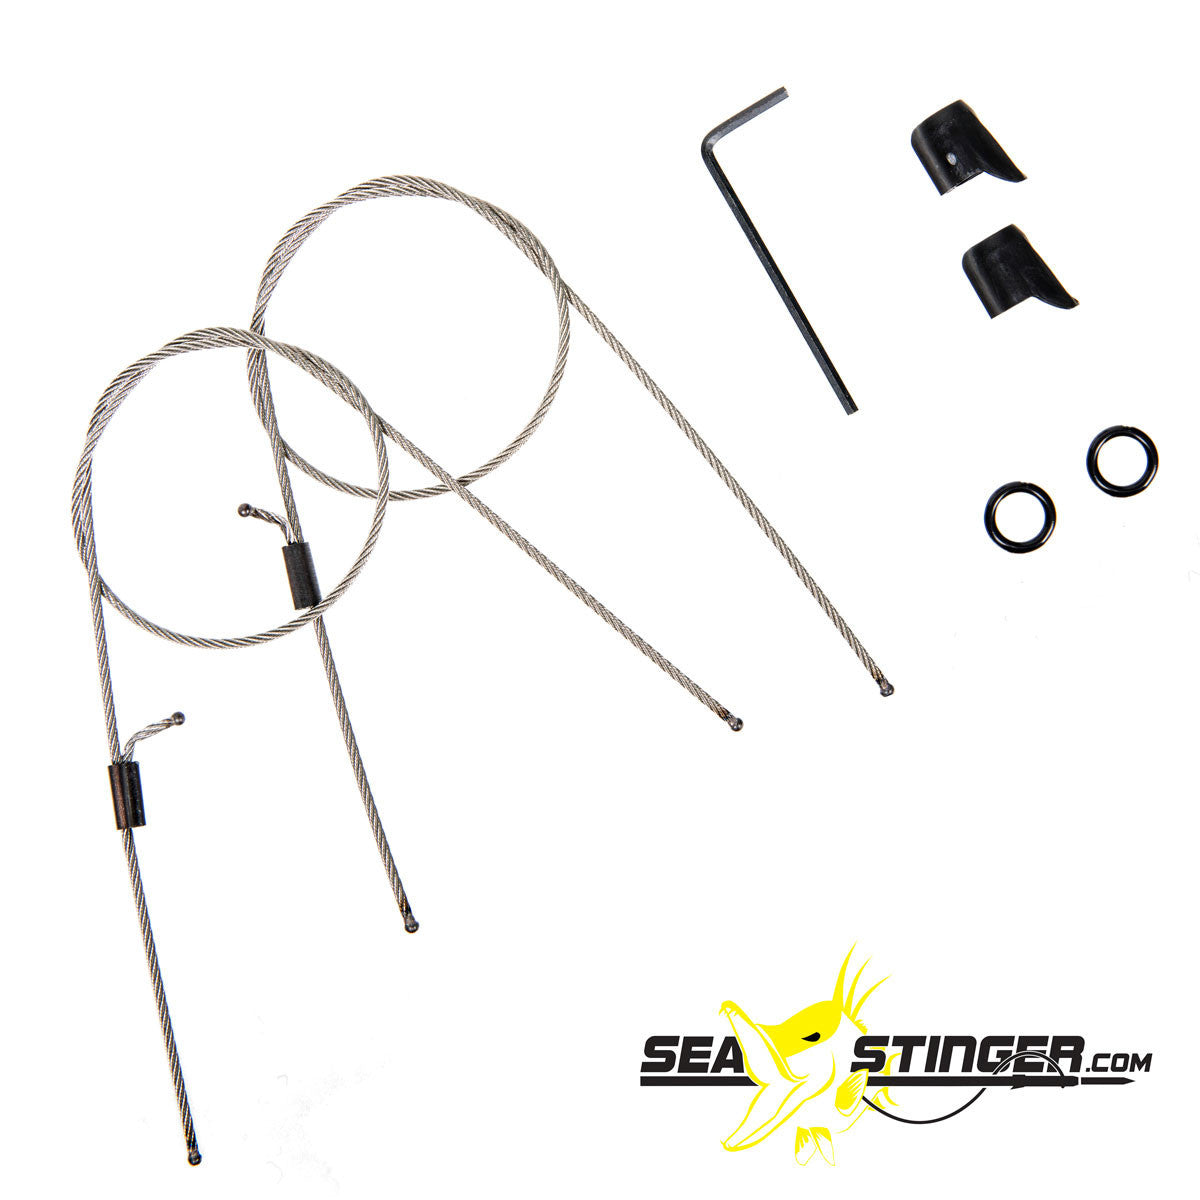 Sea Stinger Pole Spear Rebuild Kit | Sea Stinger